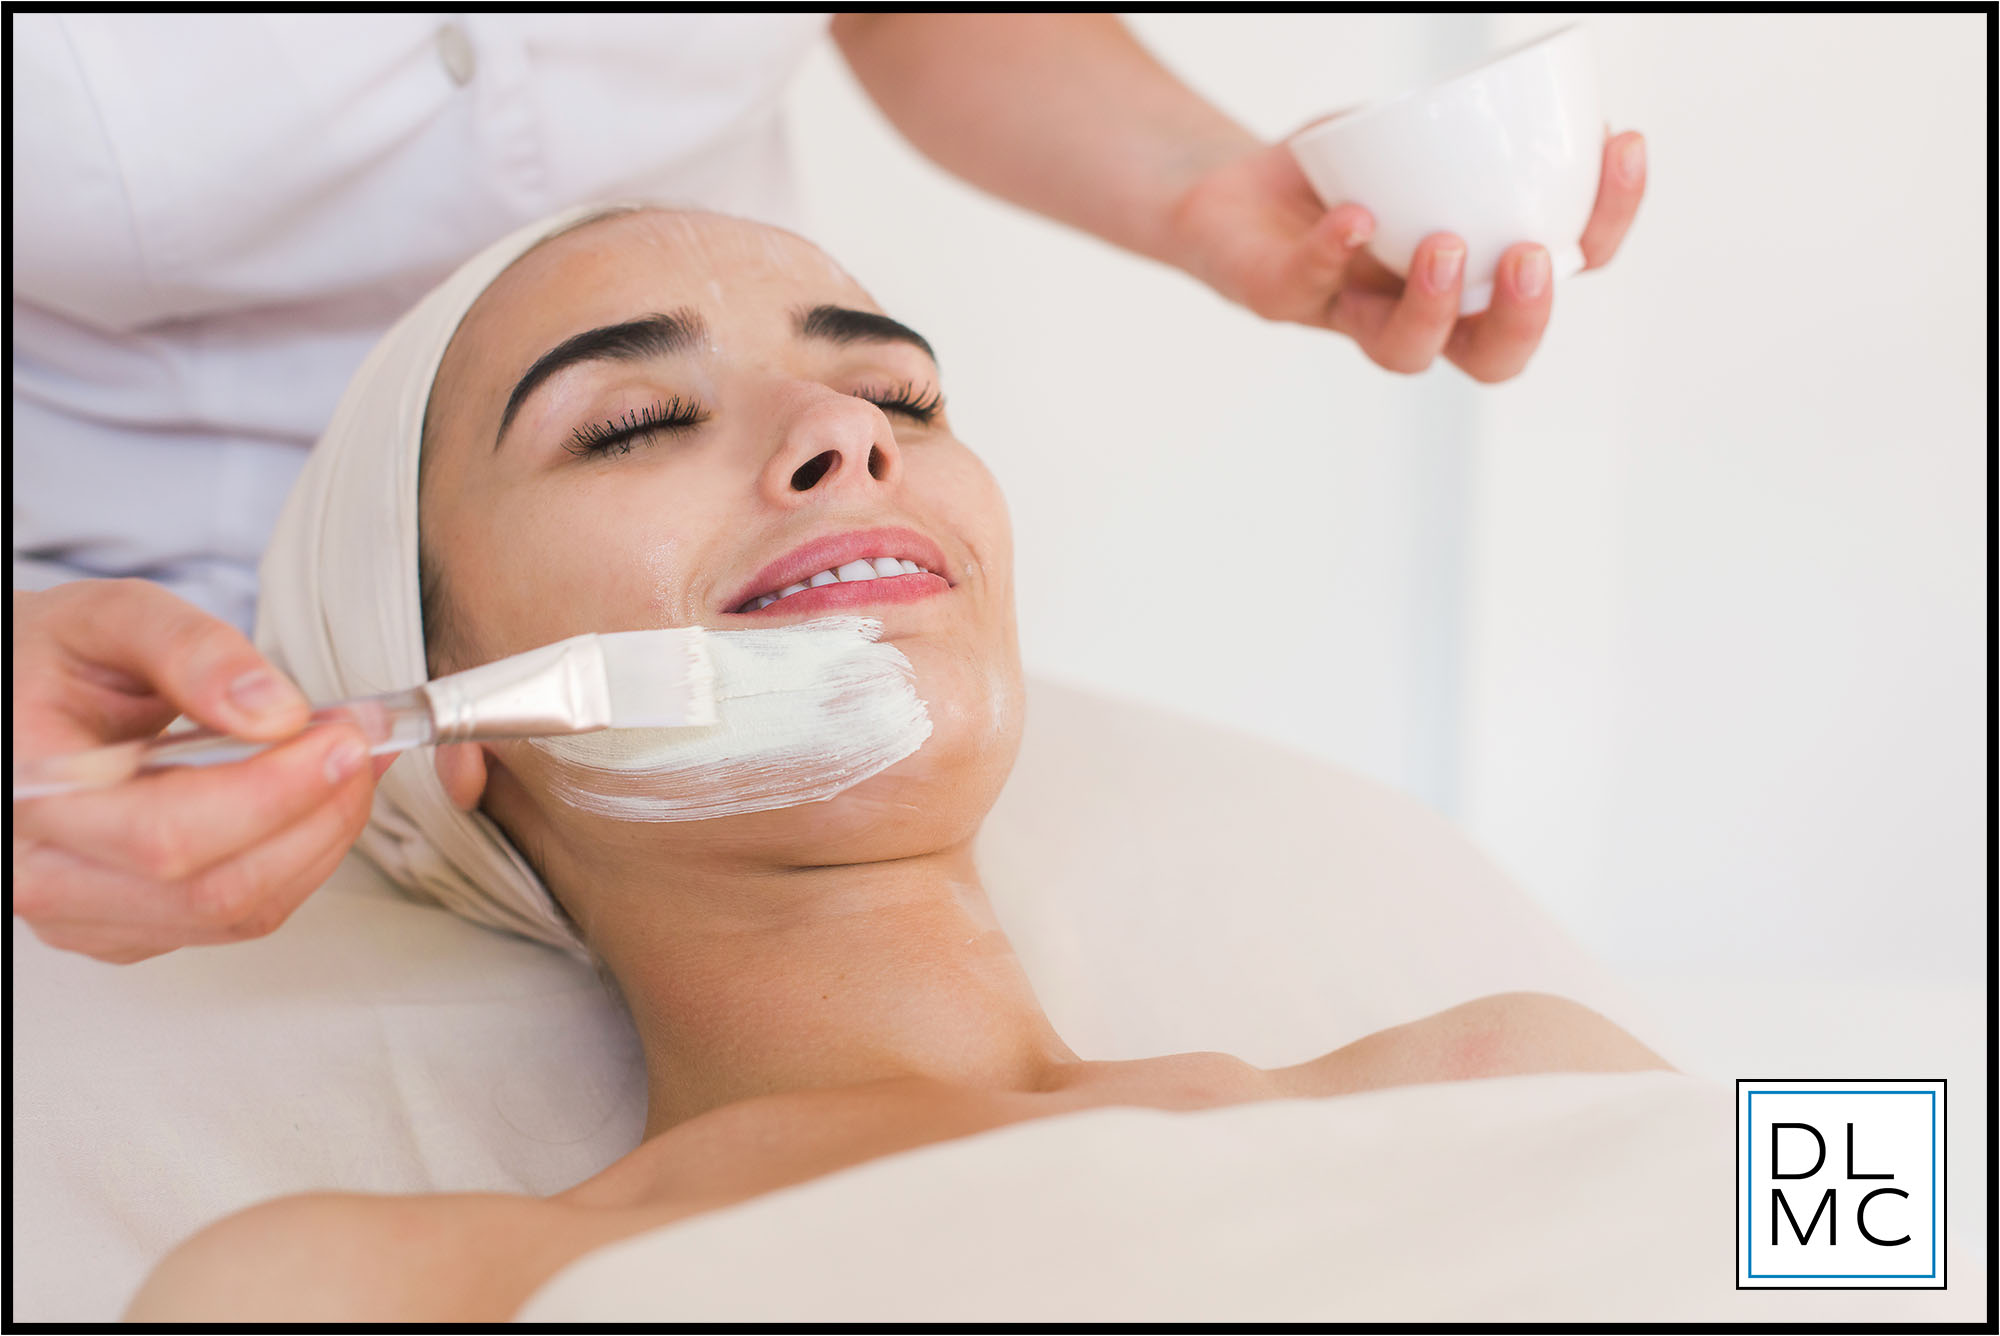 chemical peel - A chemical peel is a treatment in which a chemical solution is applied to the skin that causes it to exfoliate and eventually peel off. After the skin has flaked off the new, regenerated skin is smoother and more even in tone.What problems can it help with?It can help improve mild skin discoloration, smooth out the appearance of rough skin, age spots, treat some precancerous skin growths, i.e. actinic keratosis, smooth out fine lines and wrinkles, smooth out acne scars, dry up an active acne breakout and restore PH in the skin.Types of chemical peels offered:• Glycolic • PCA • TCA